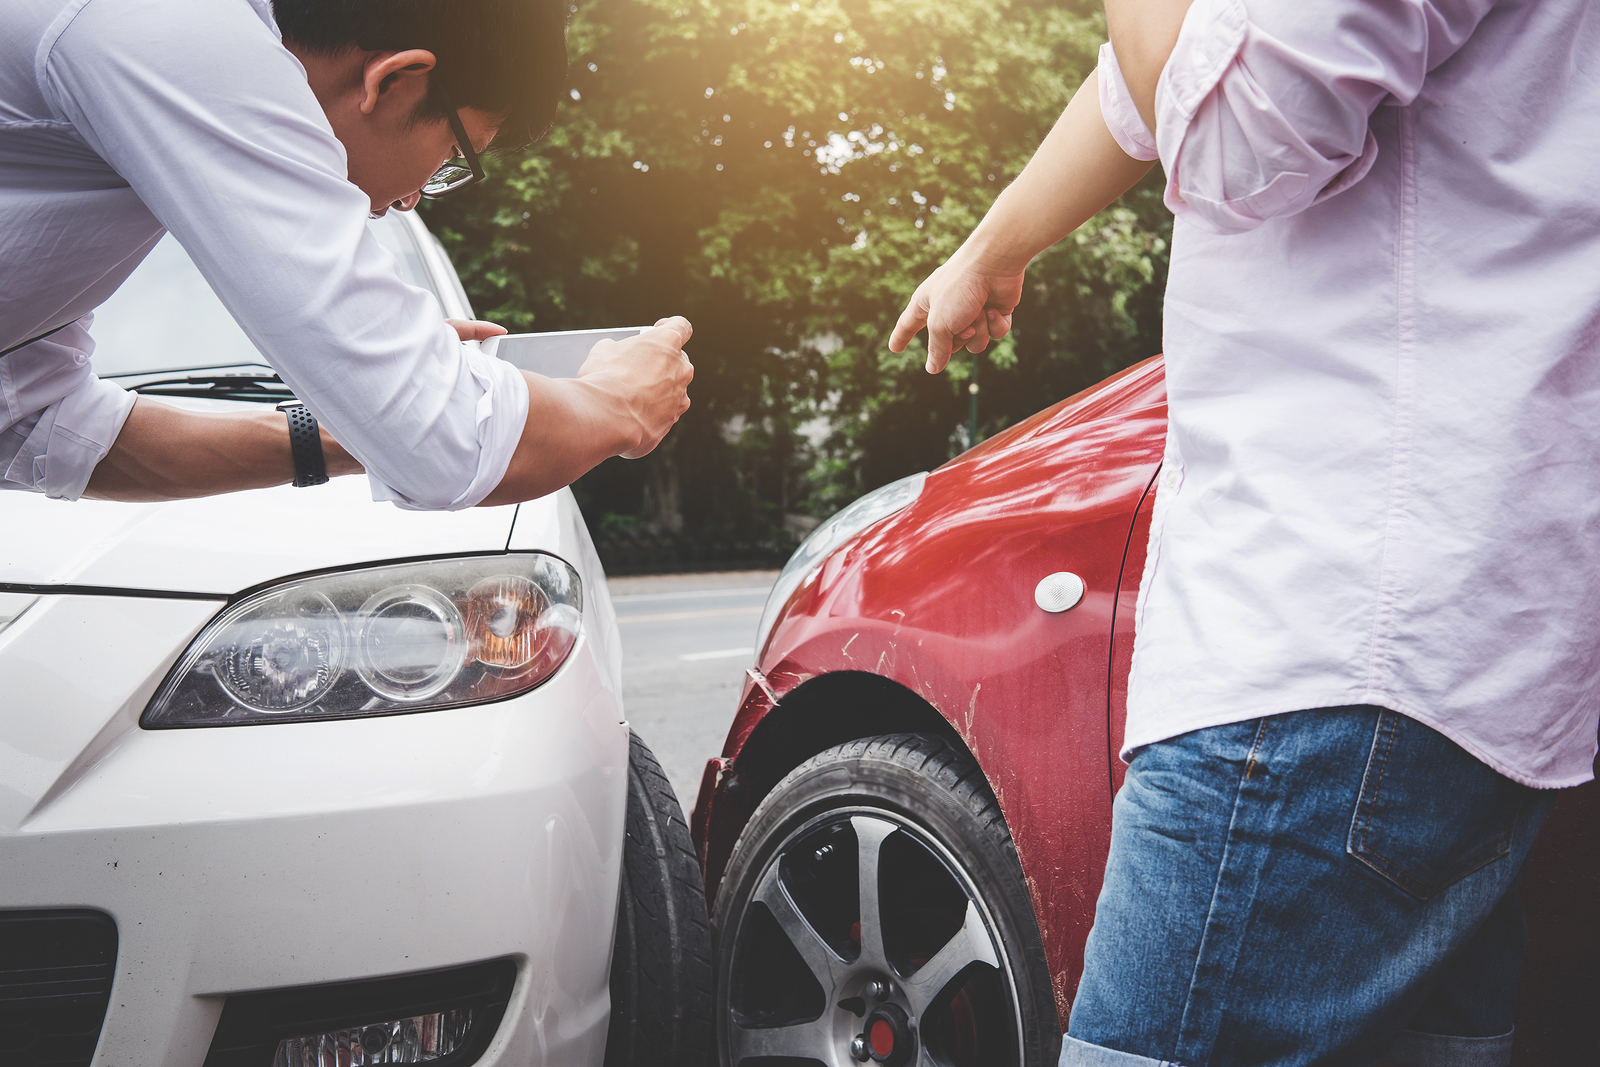 Few Tips That May Be Helpful When Injured In A Car Accident